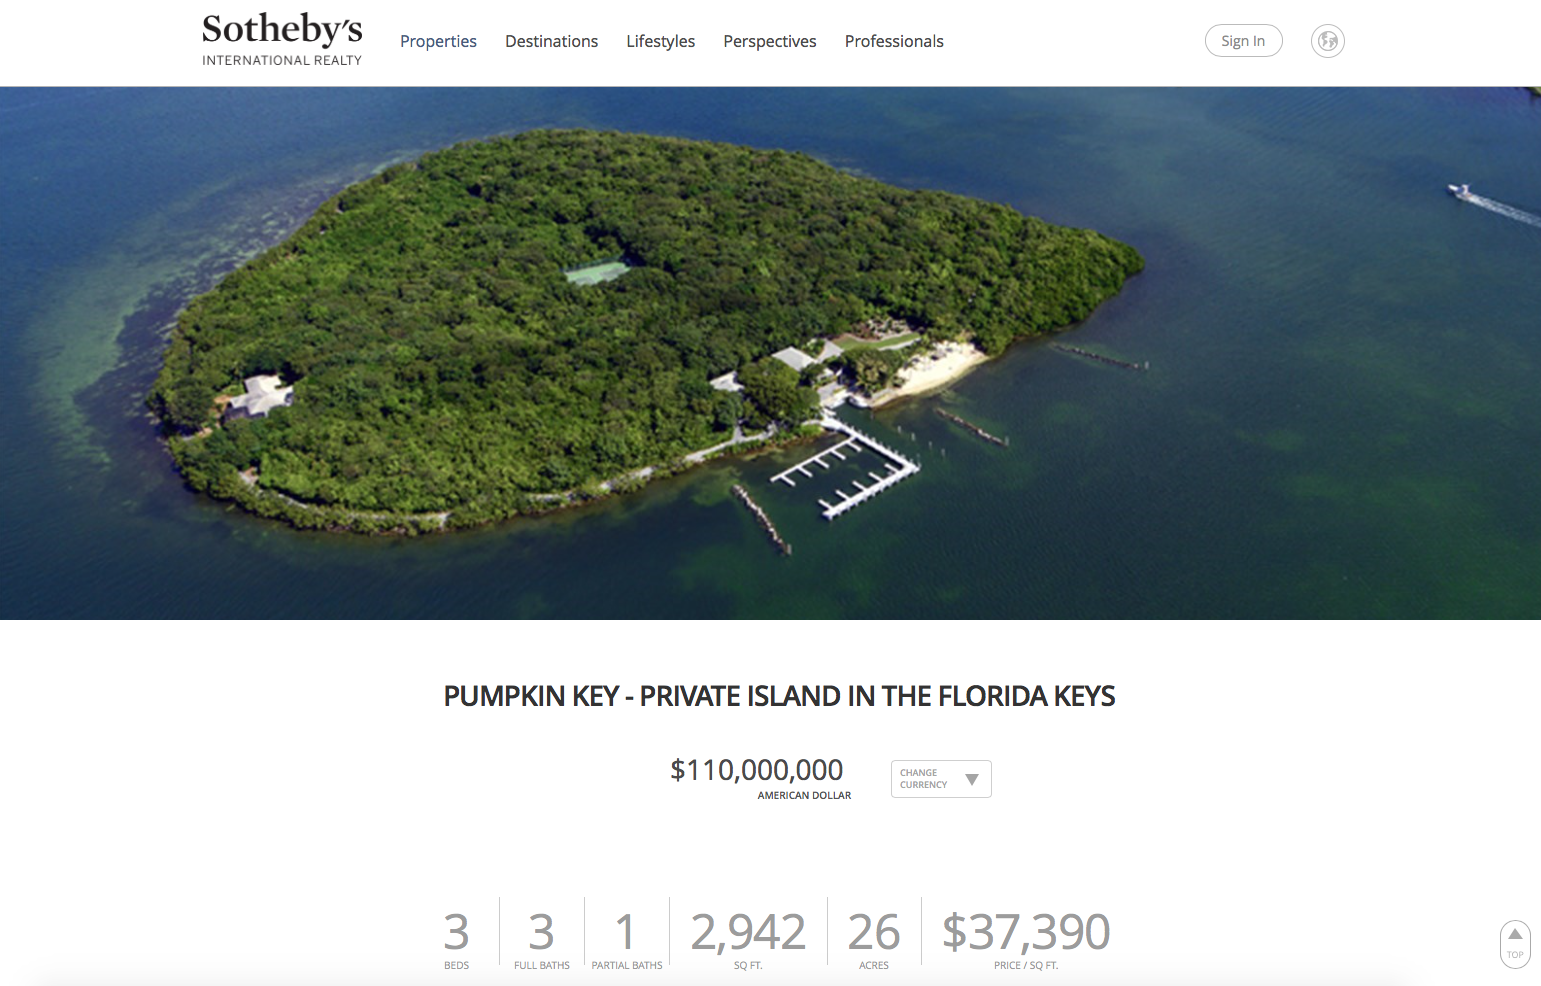 Pumpkin Key in Florida is a water front property for sale by Sotheby's International Realty.